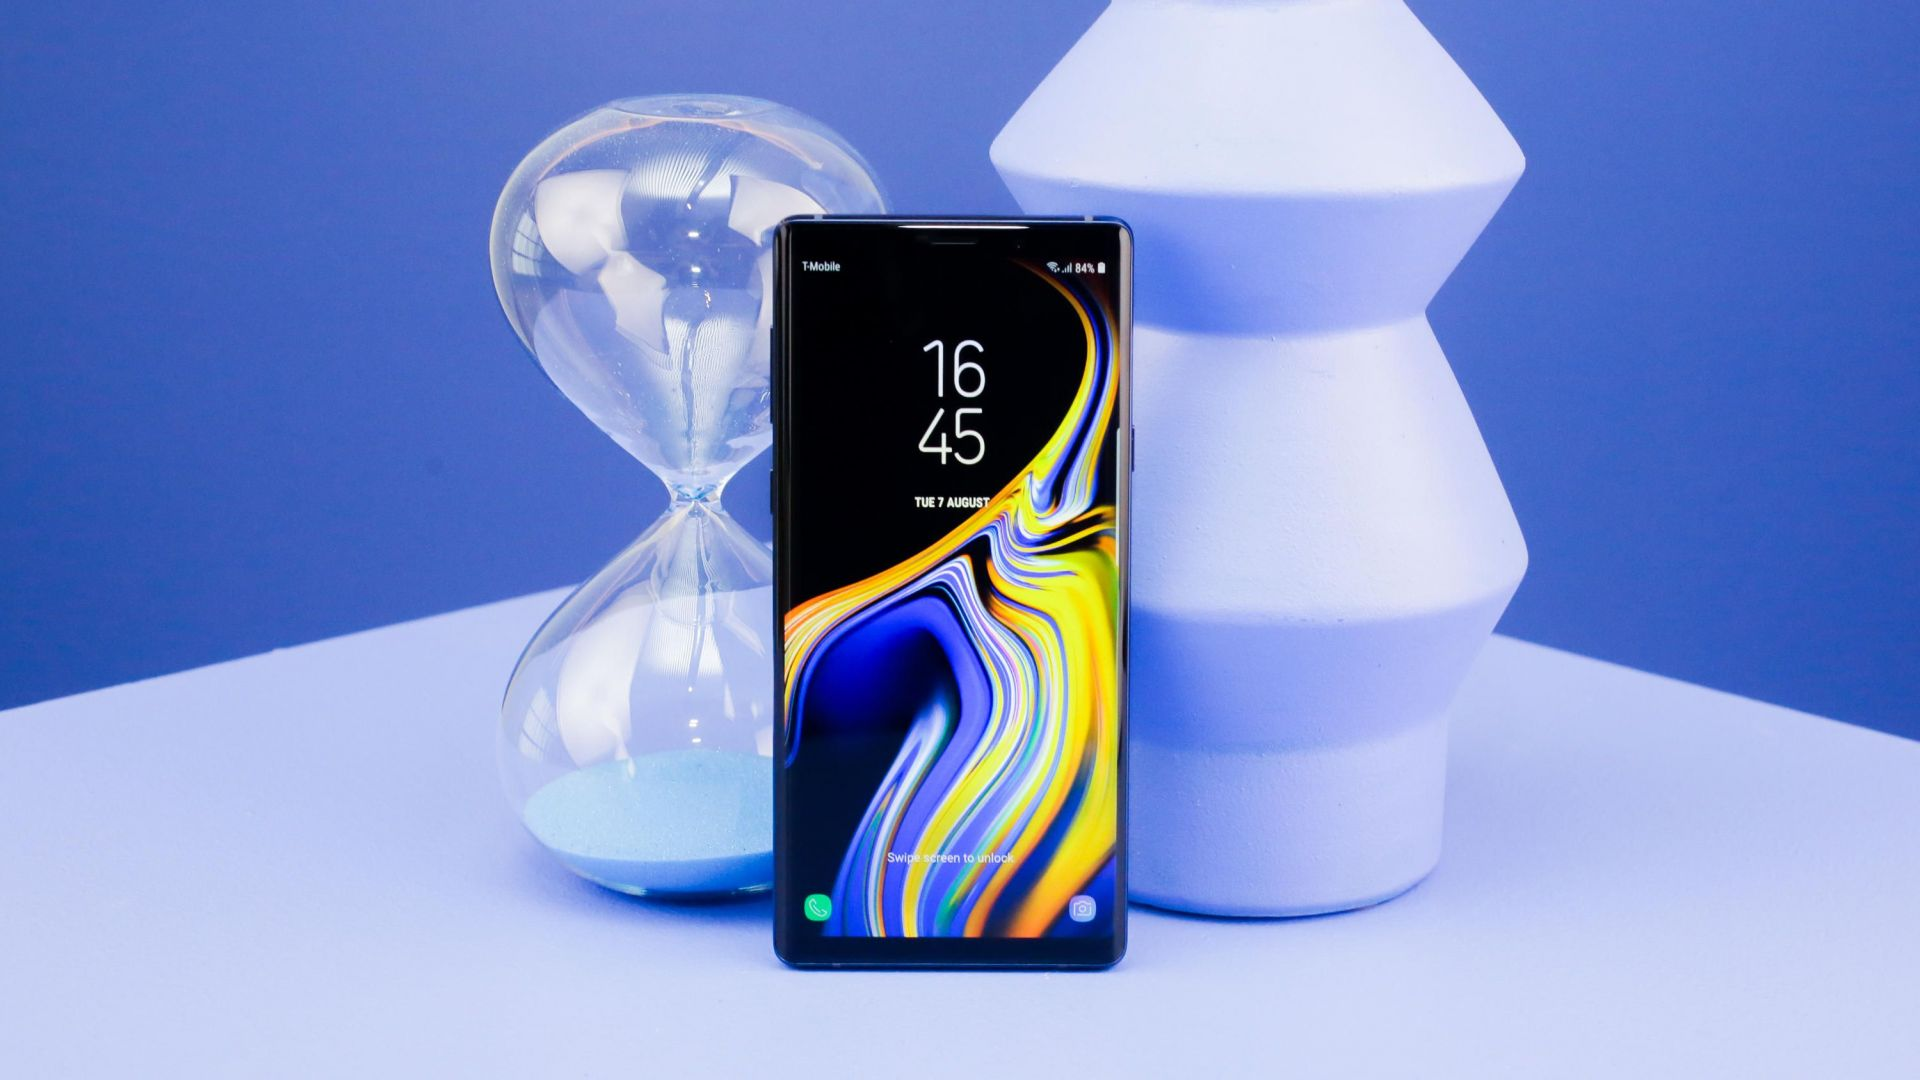 Samsung Galaxy Note 9, Android 8.0, Android Oreo, smartphone, 4K (horizontal)